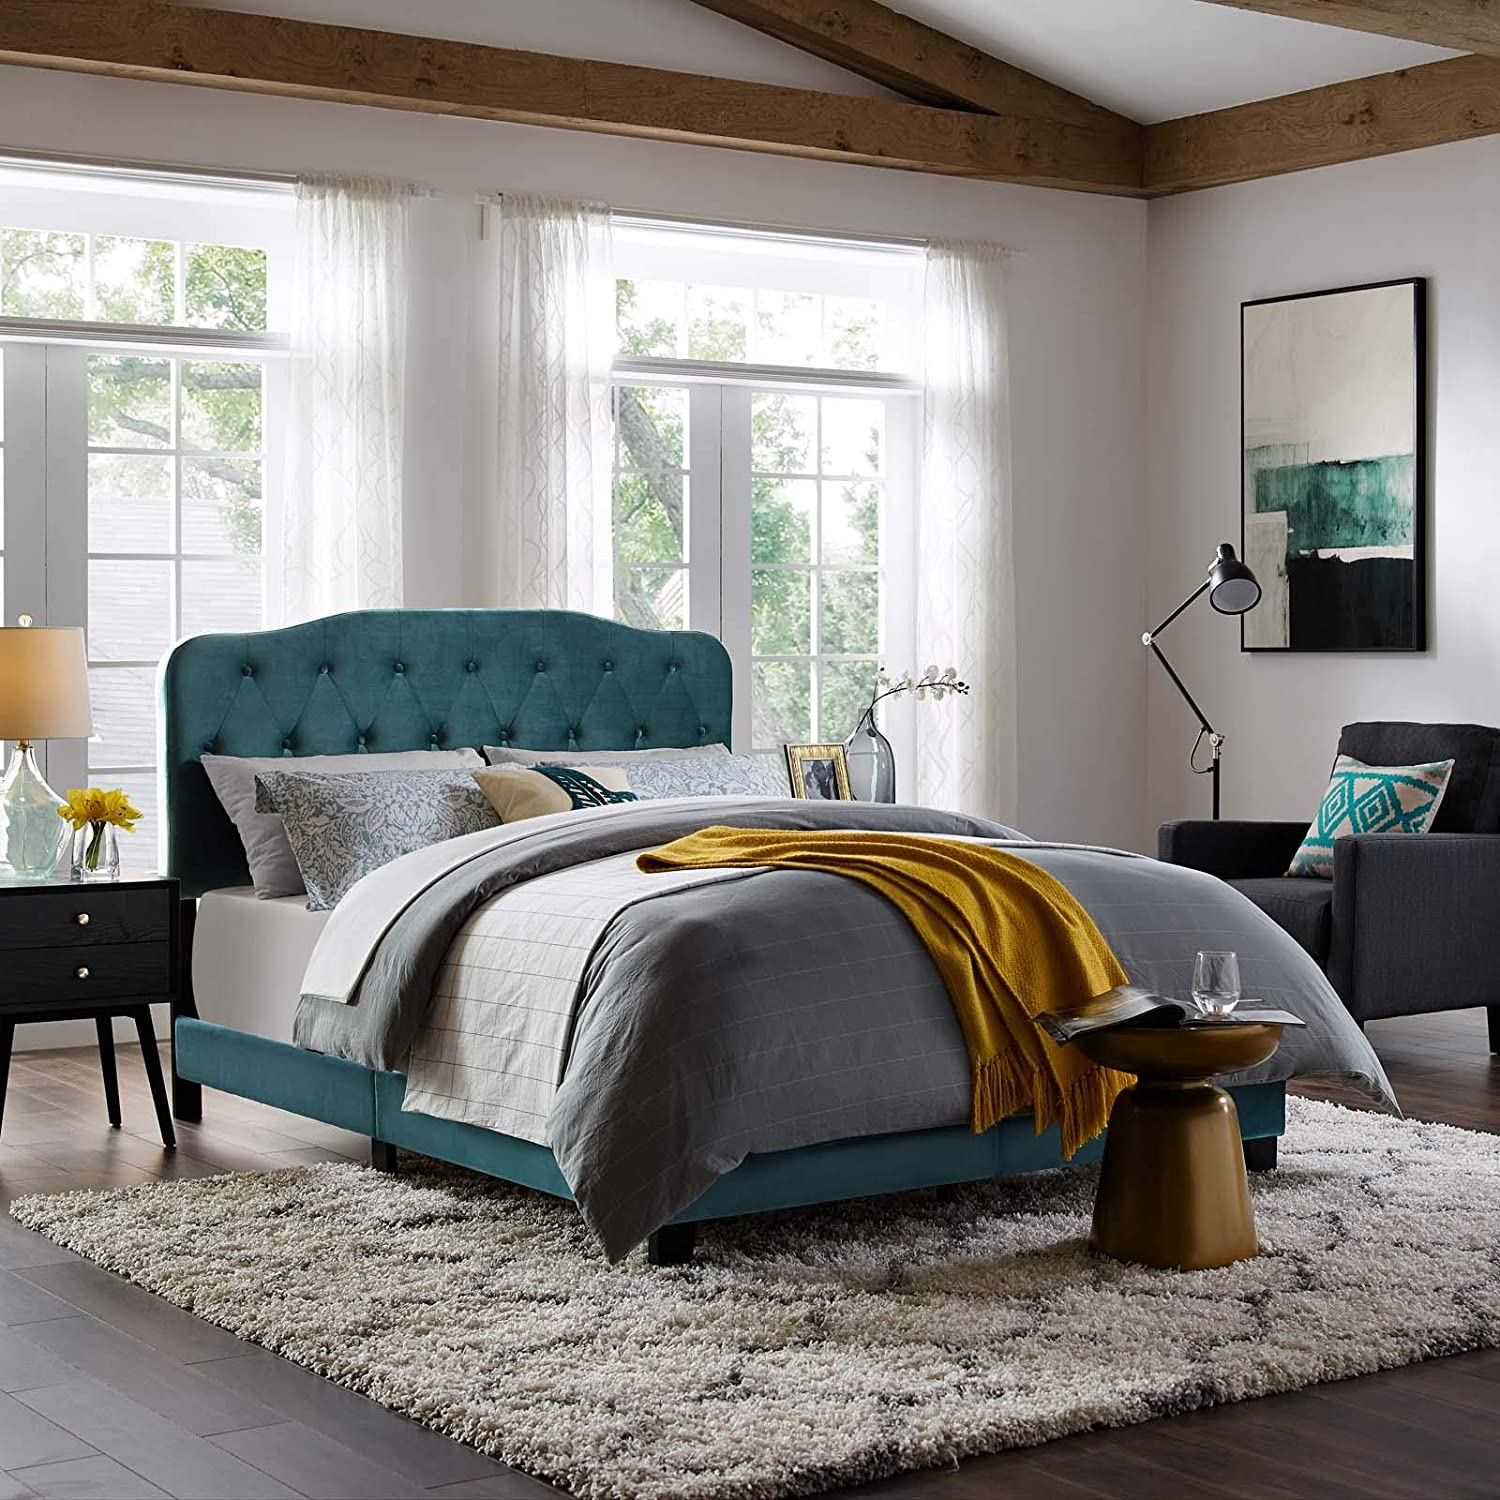 Modway Amelia Tufted Velvet Upholstered King Bed in Sea Blue